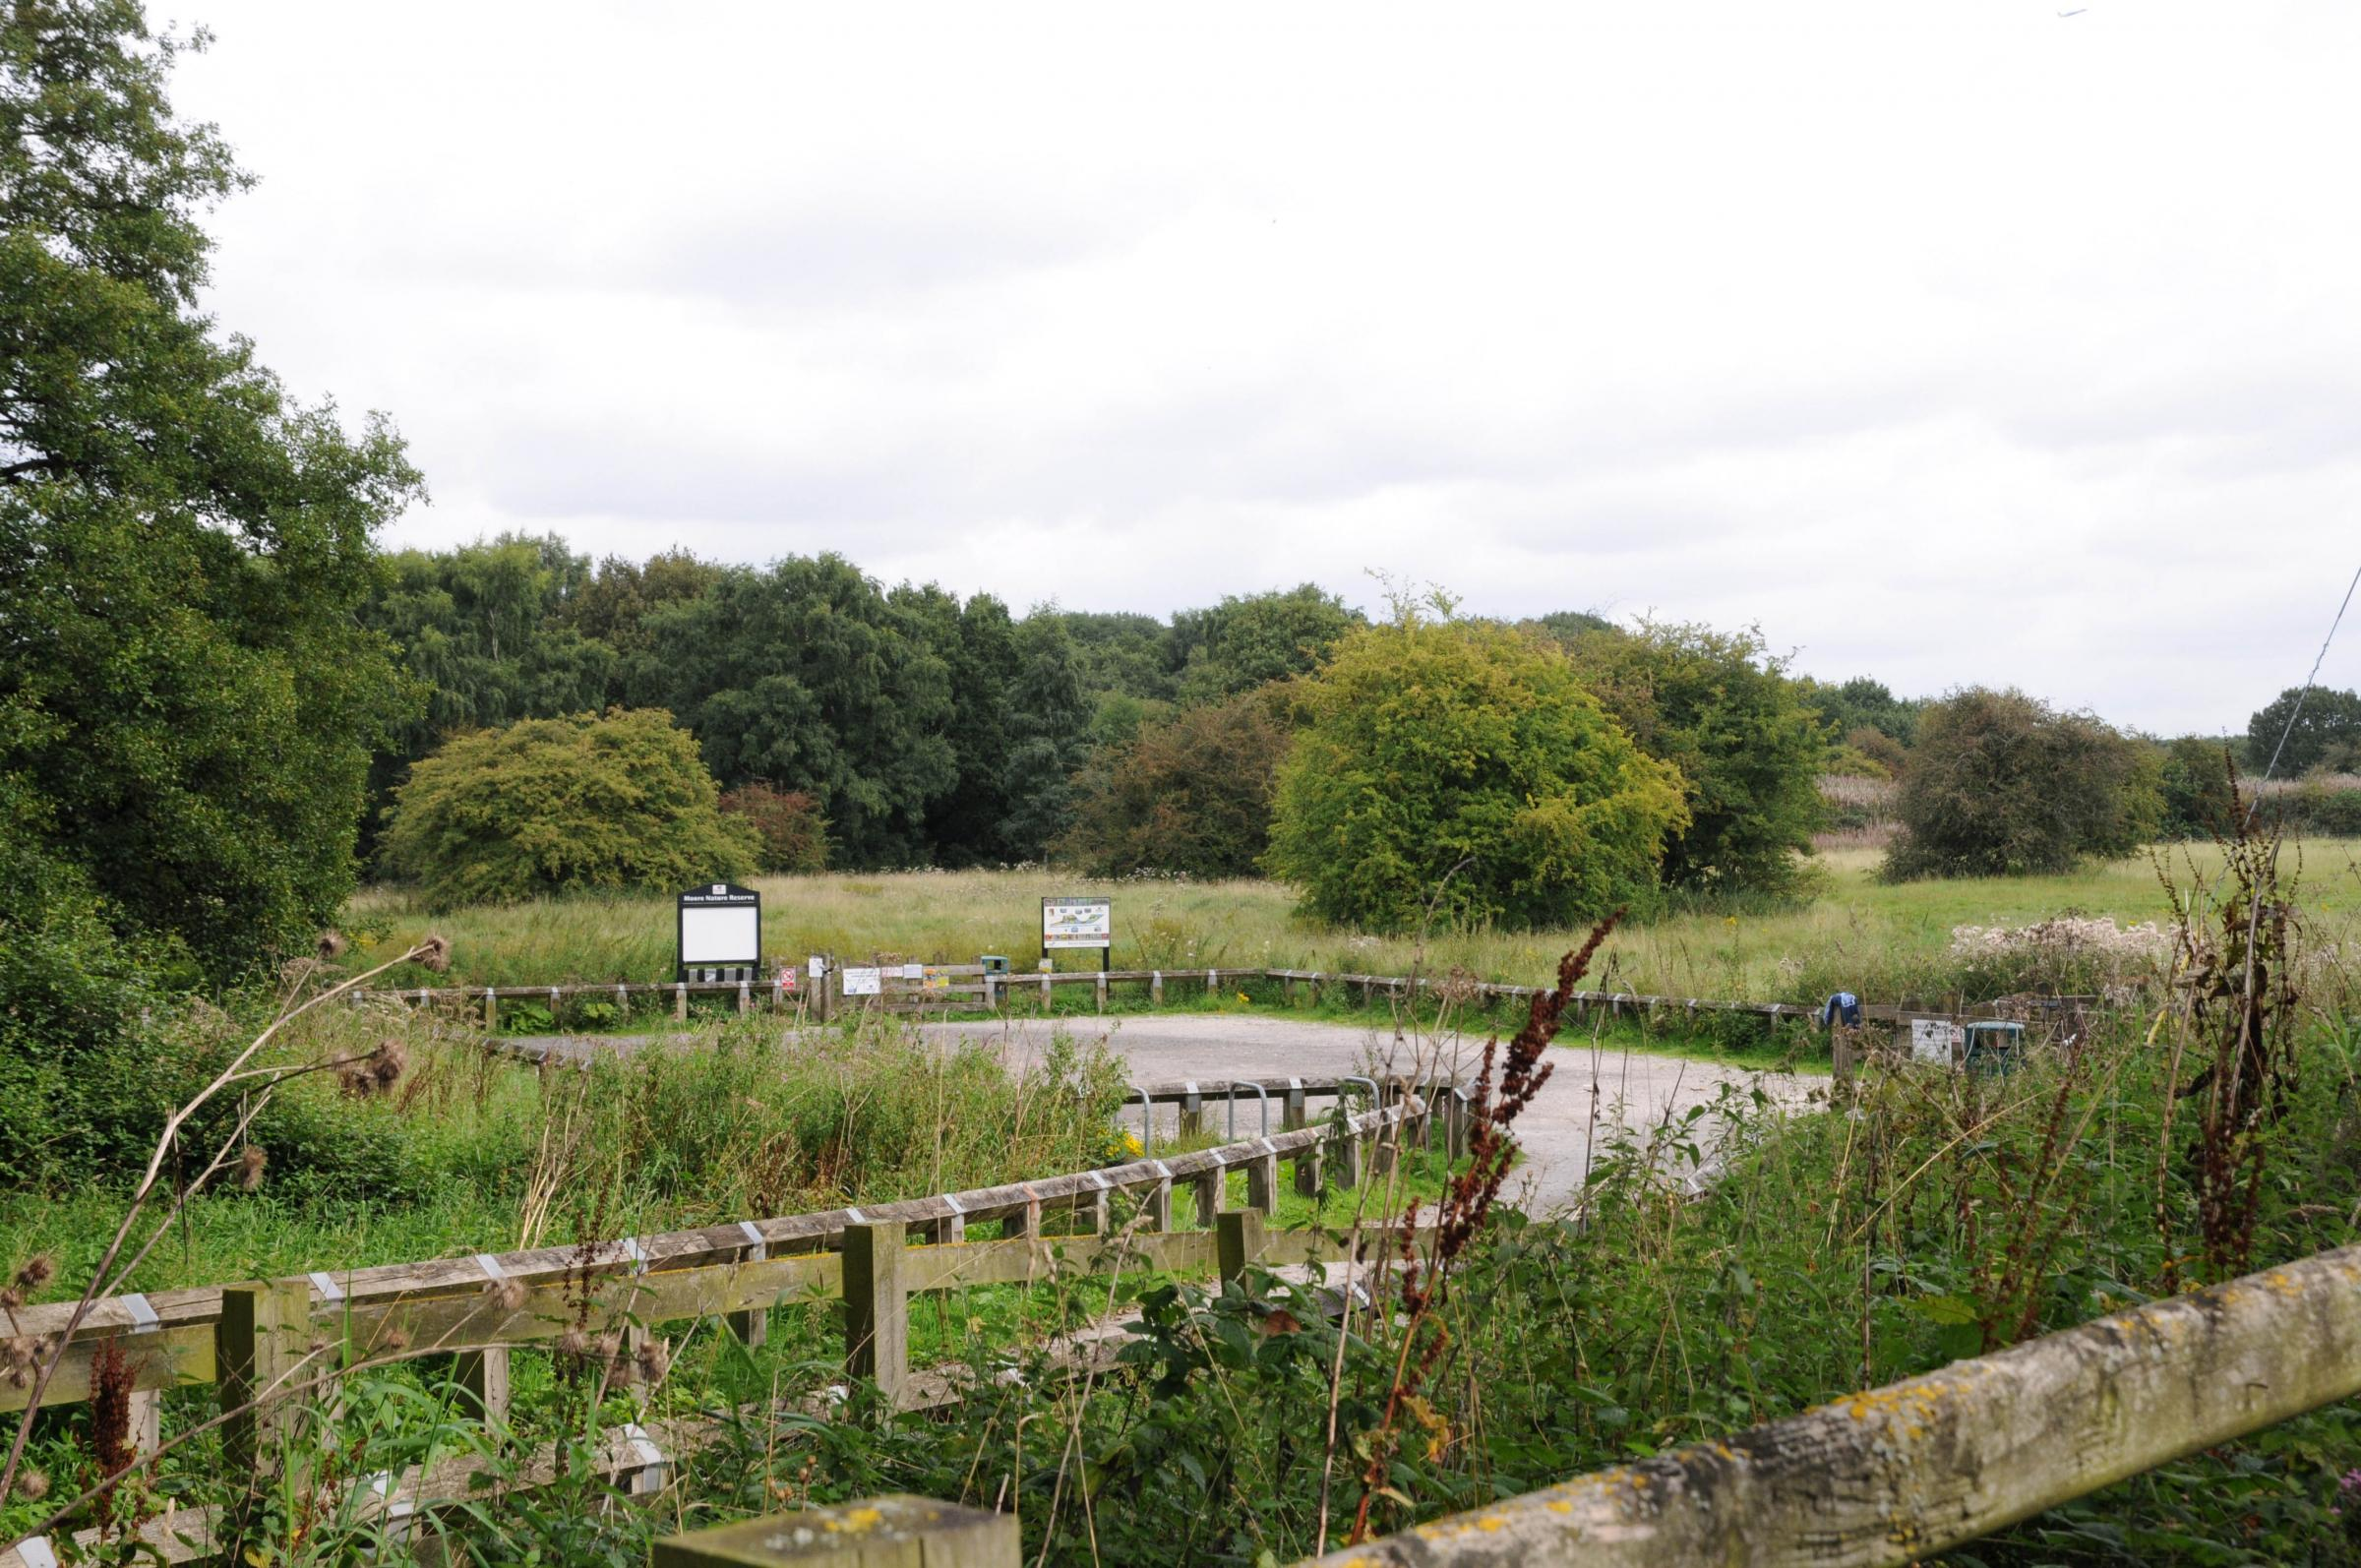 Land at Moore Nature Reserve has been proposed for development in the local plan 'preferred development option'